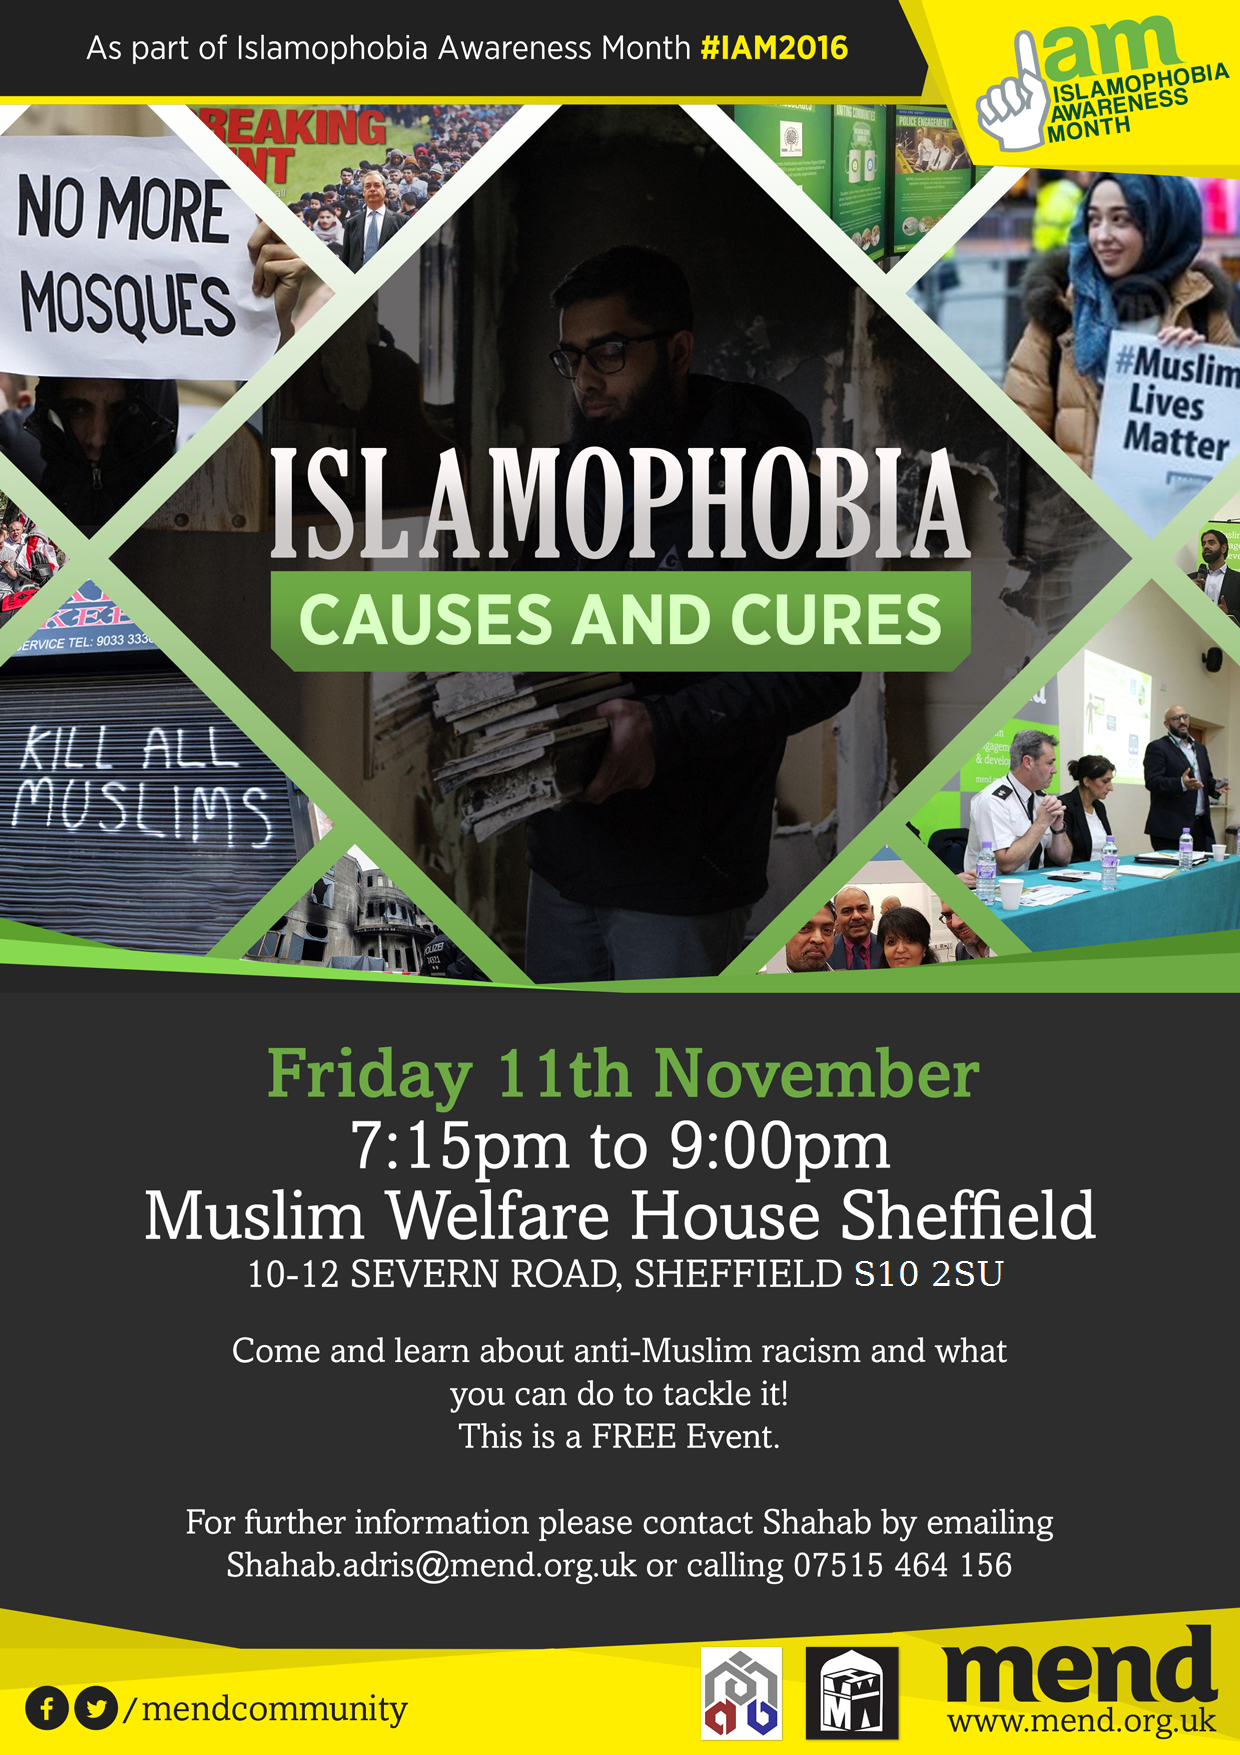 Islamophobia - Causes and Cure